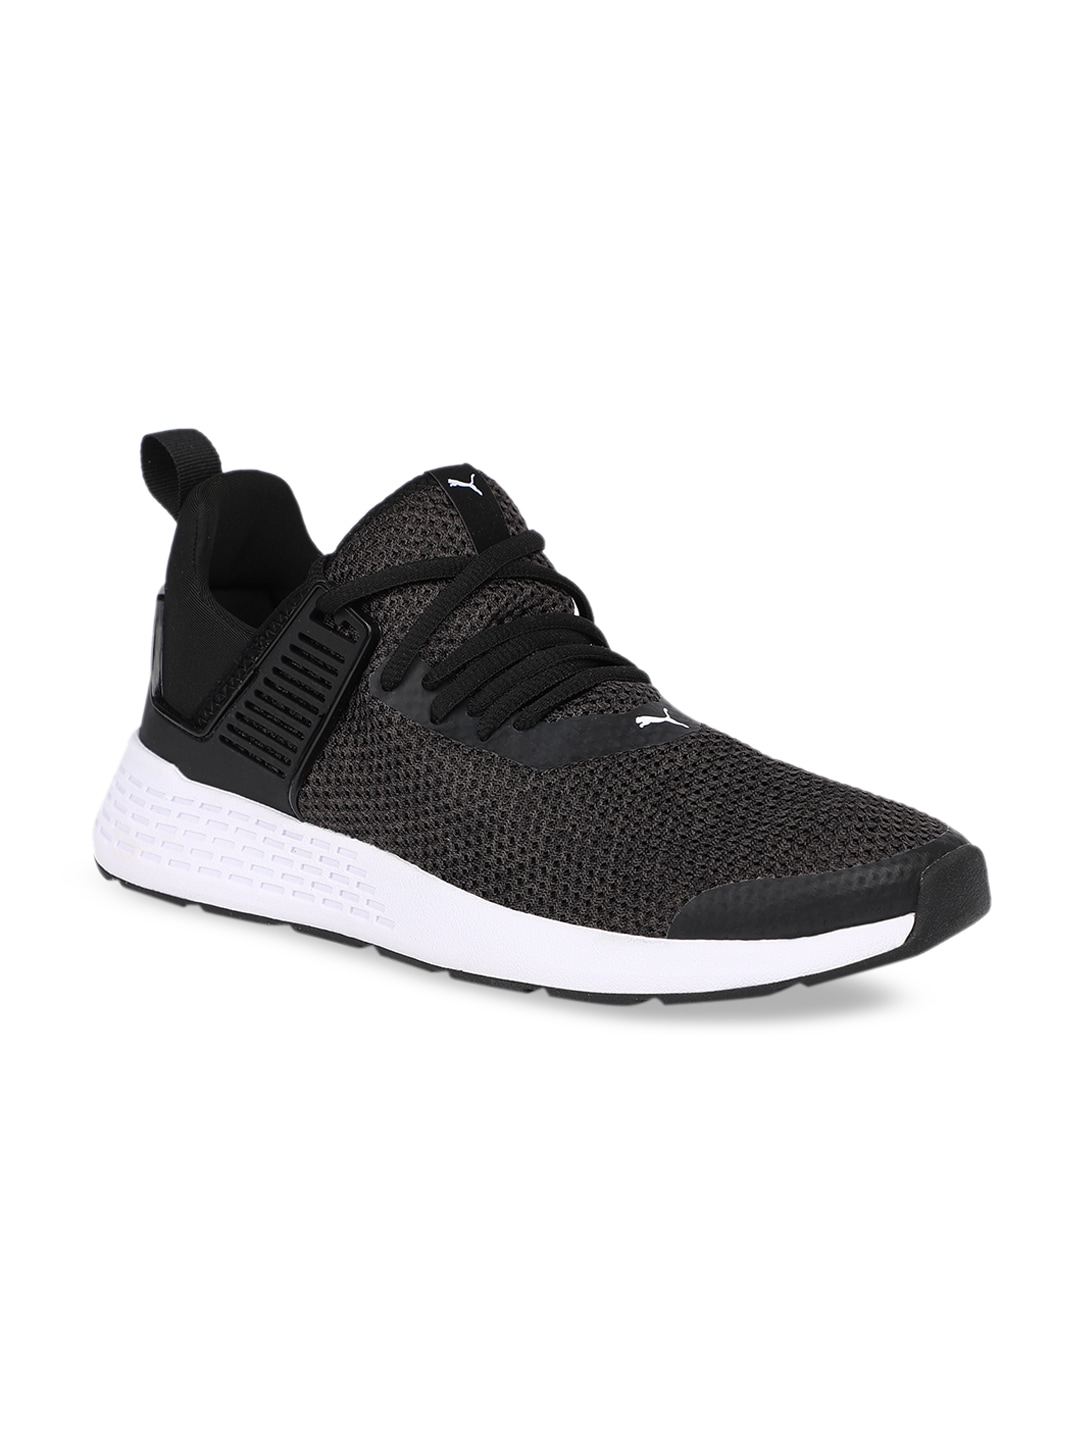 6c87d73d23f0 Men s Puma Shoes - Buy Puma Shoes for Men Online in India